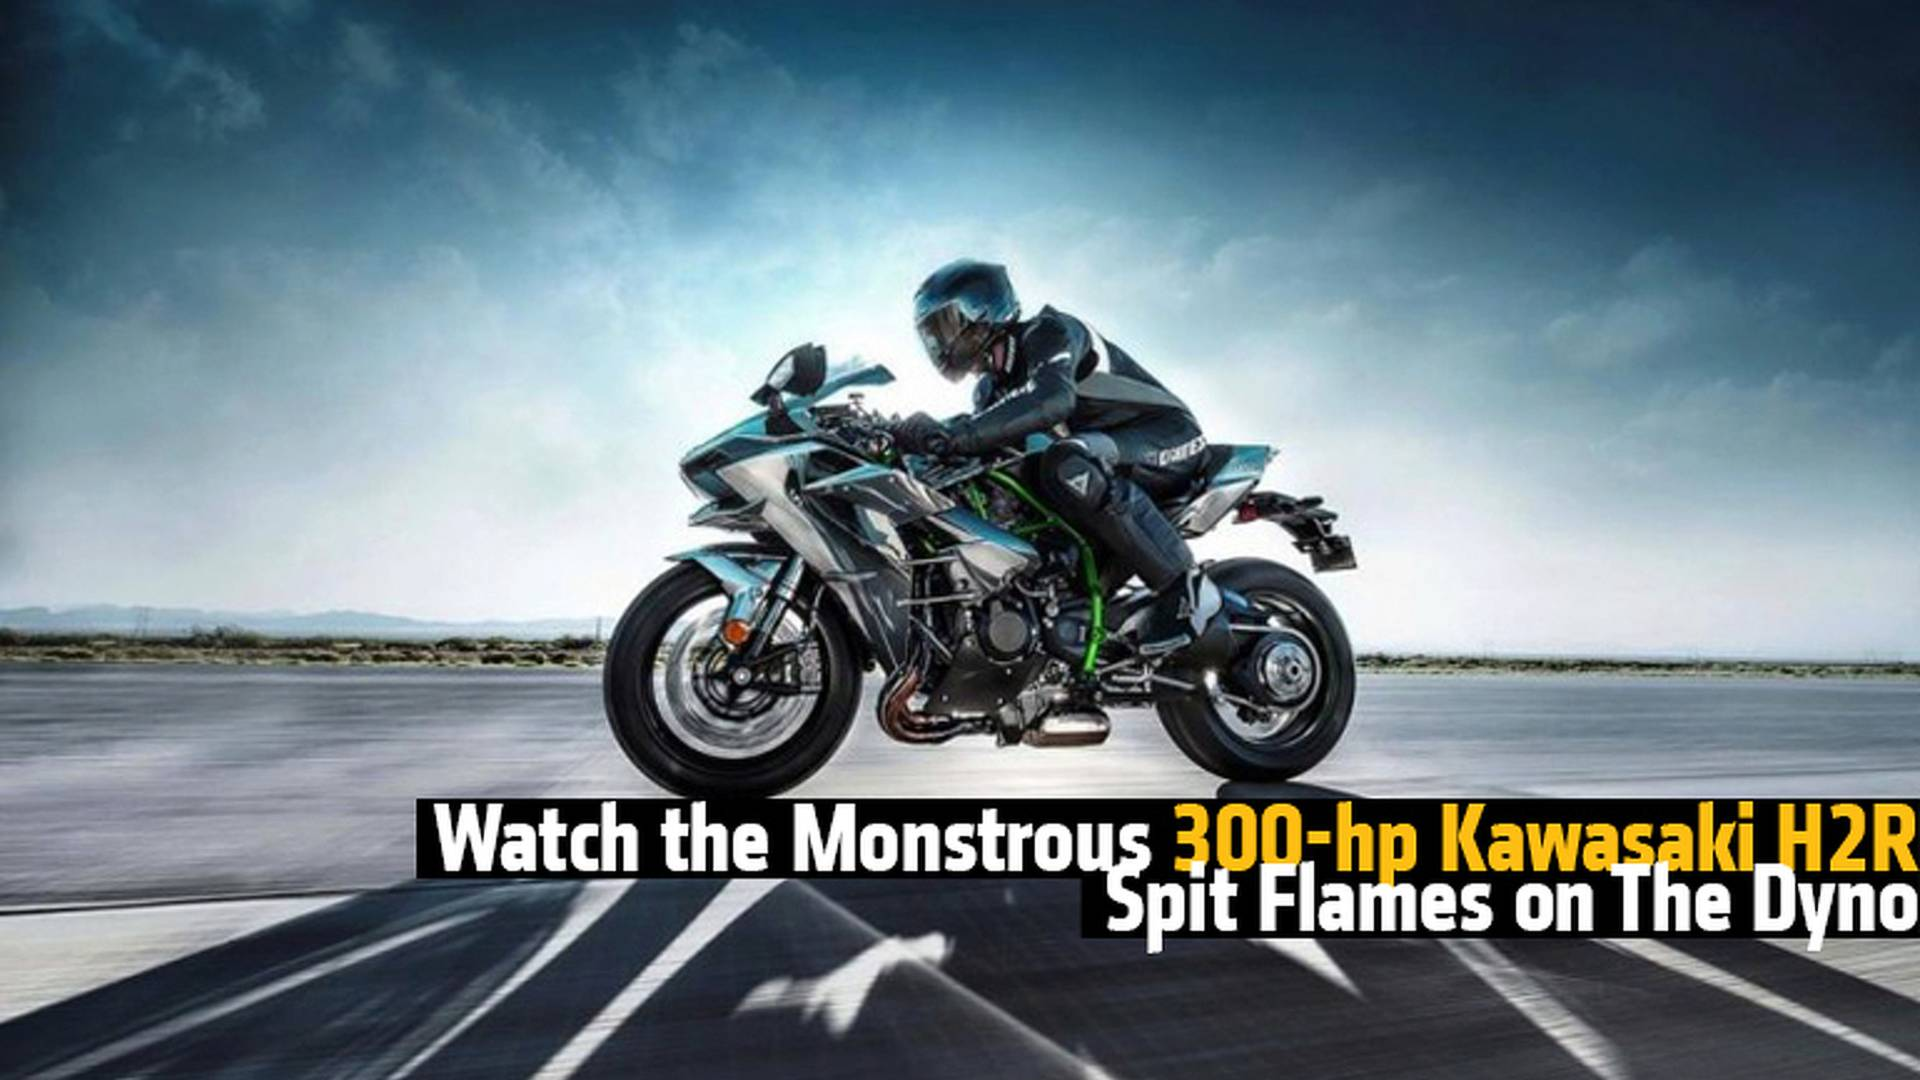 Watch The Monstrous 300 Hp Kawasaki H2r Spit Flames On The Dyno